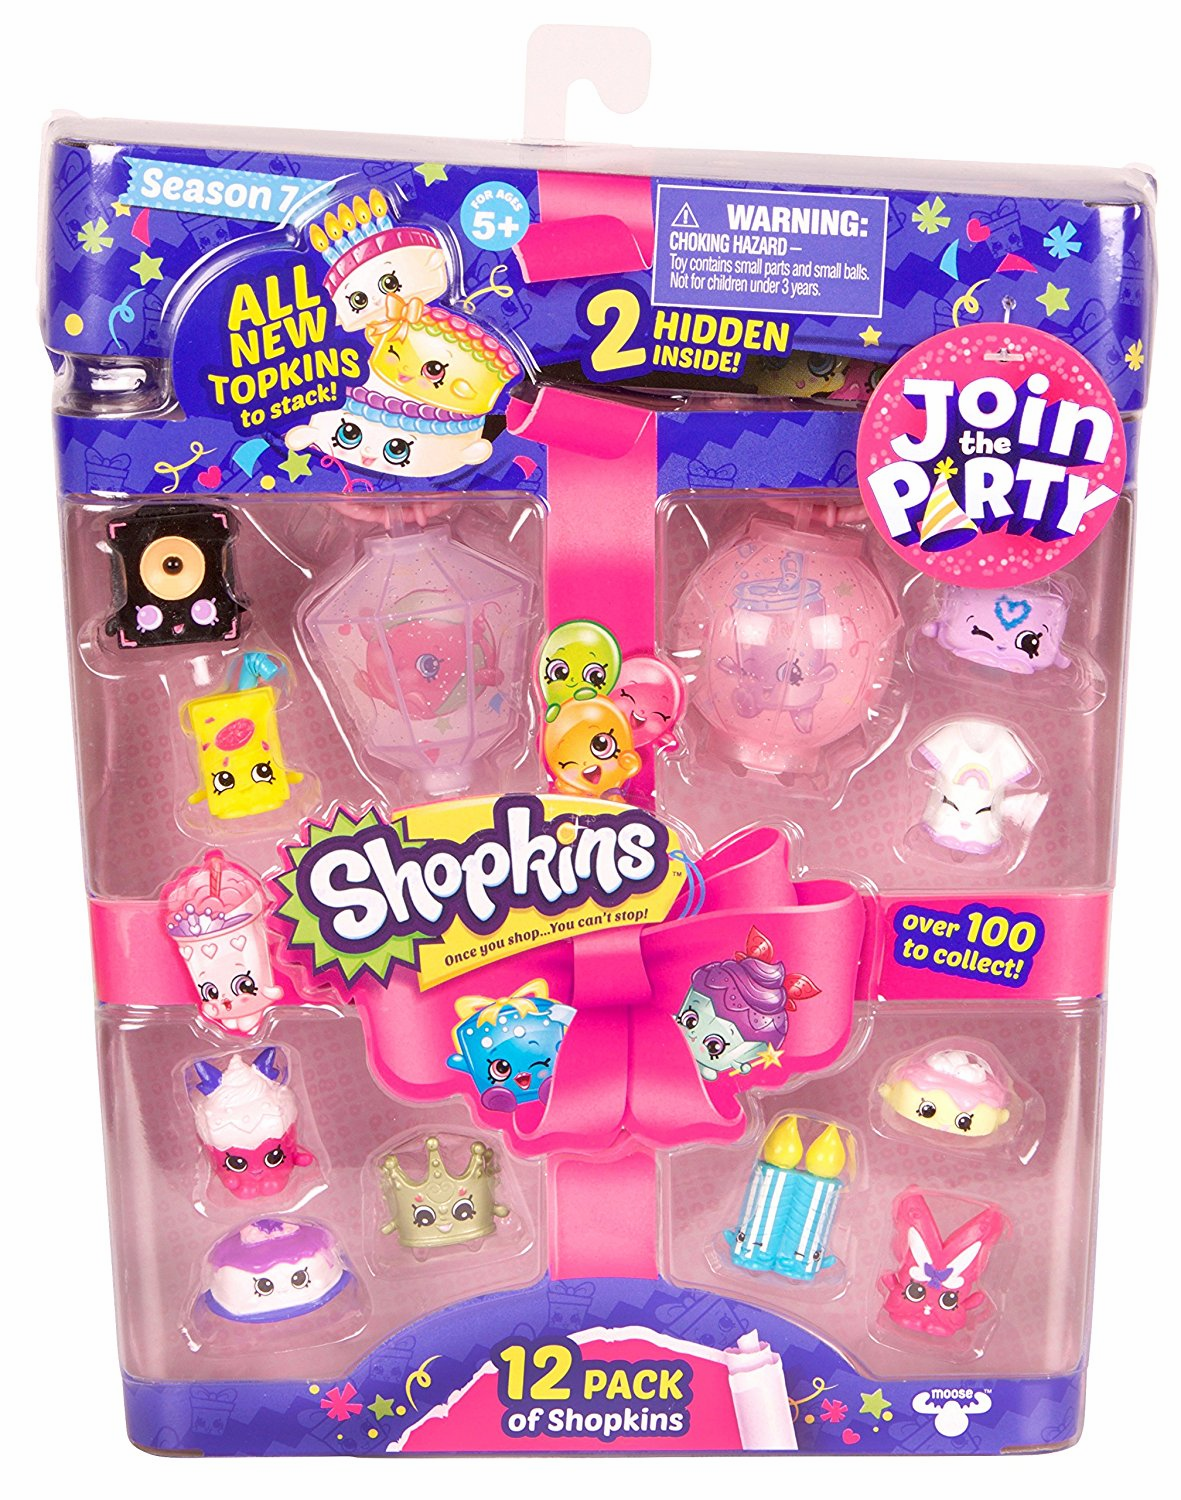 Shopkins - 12 Pack - Season 7